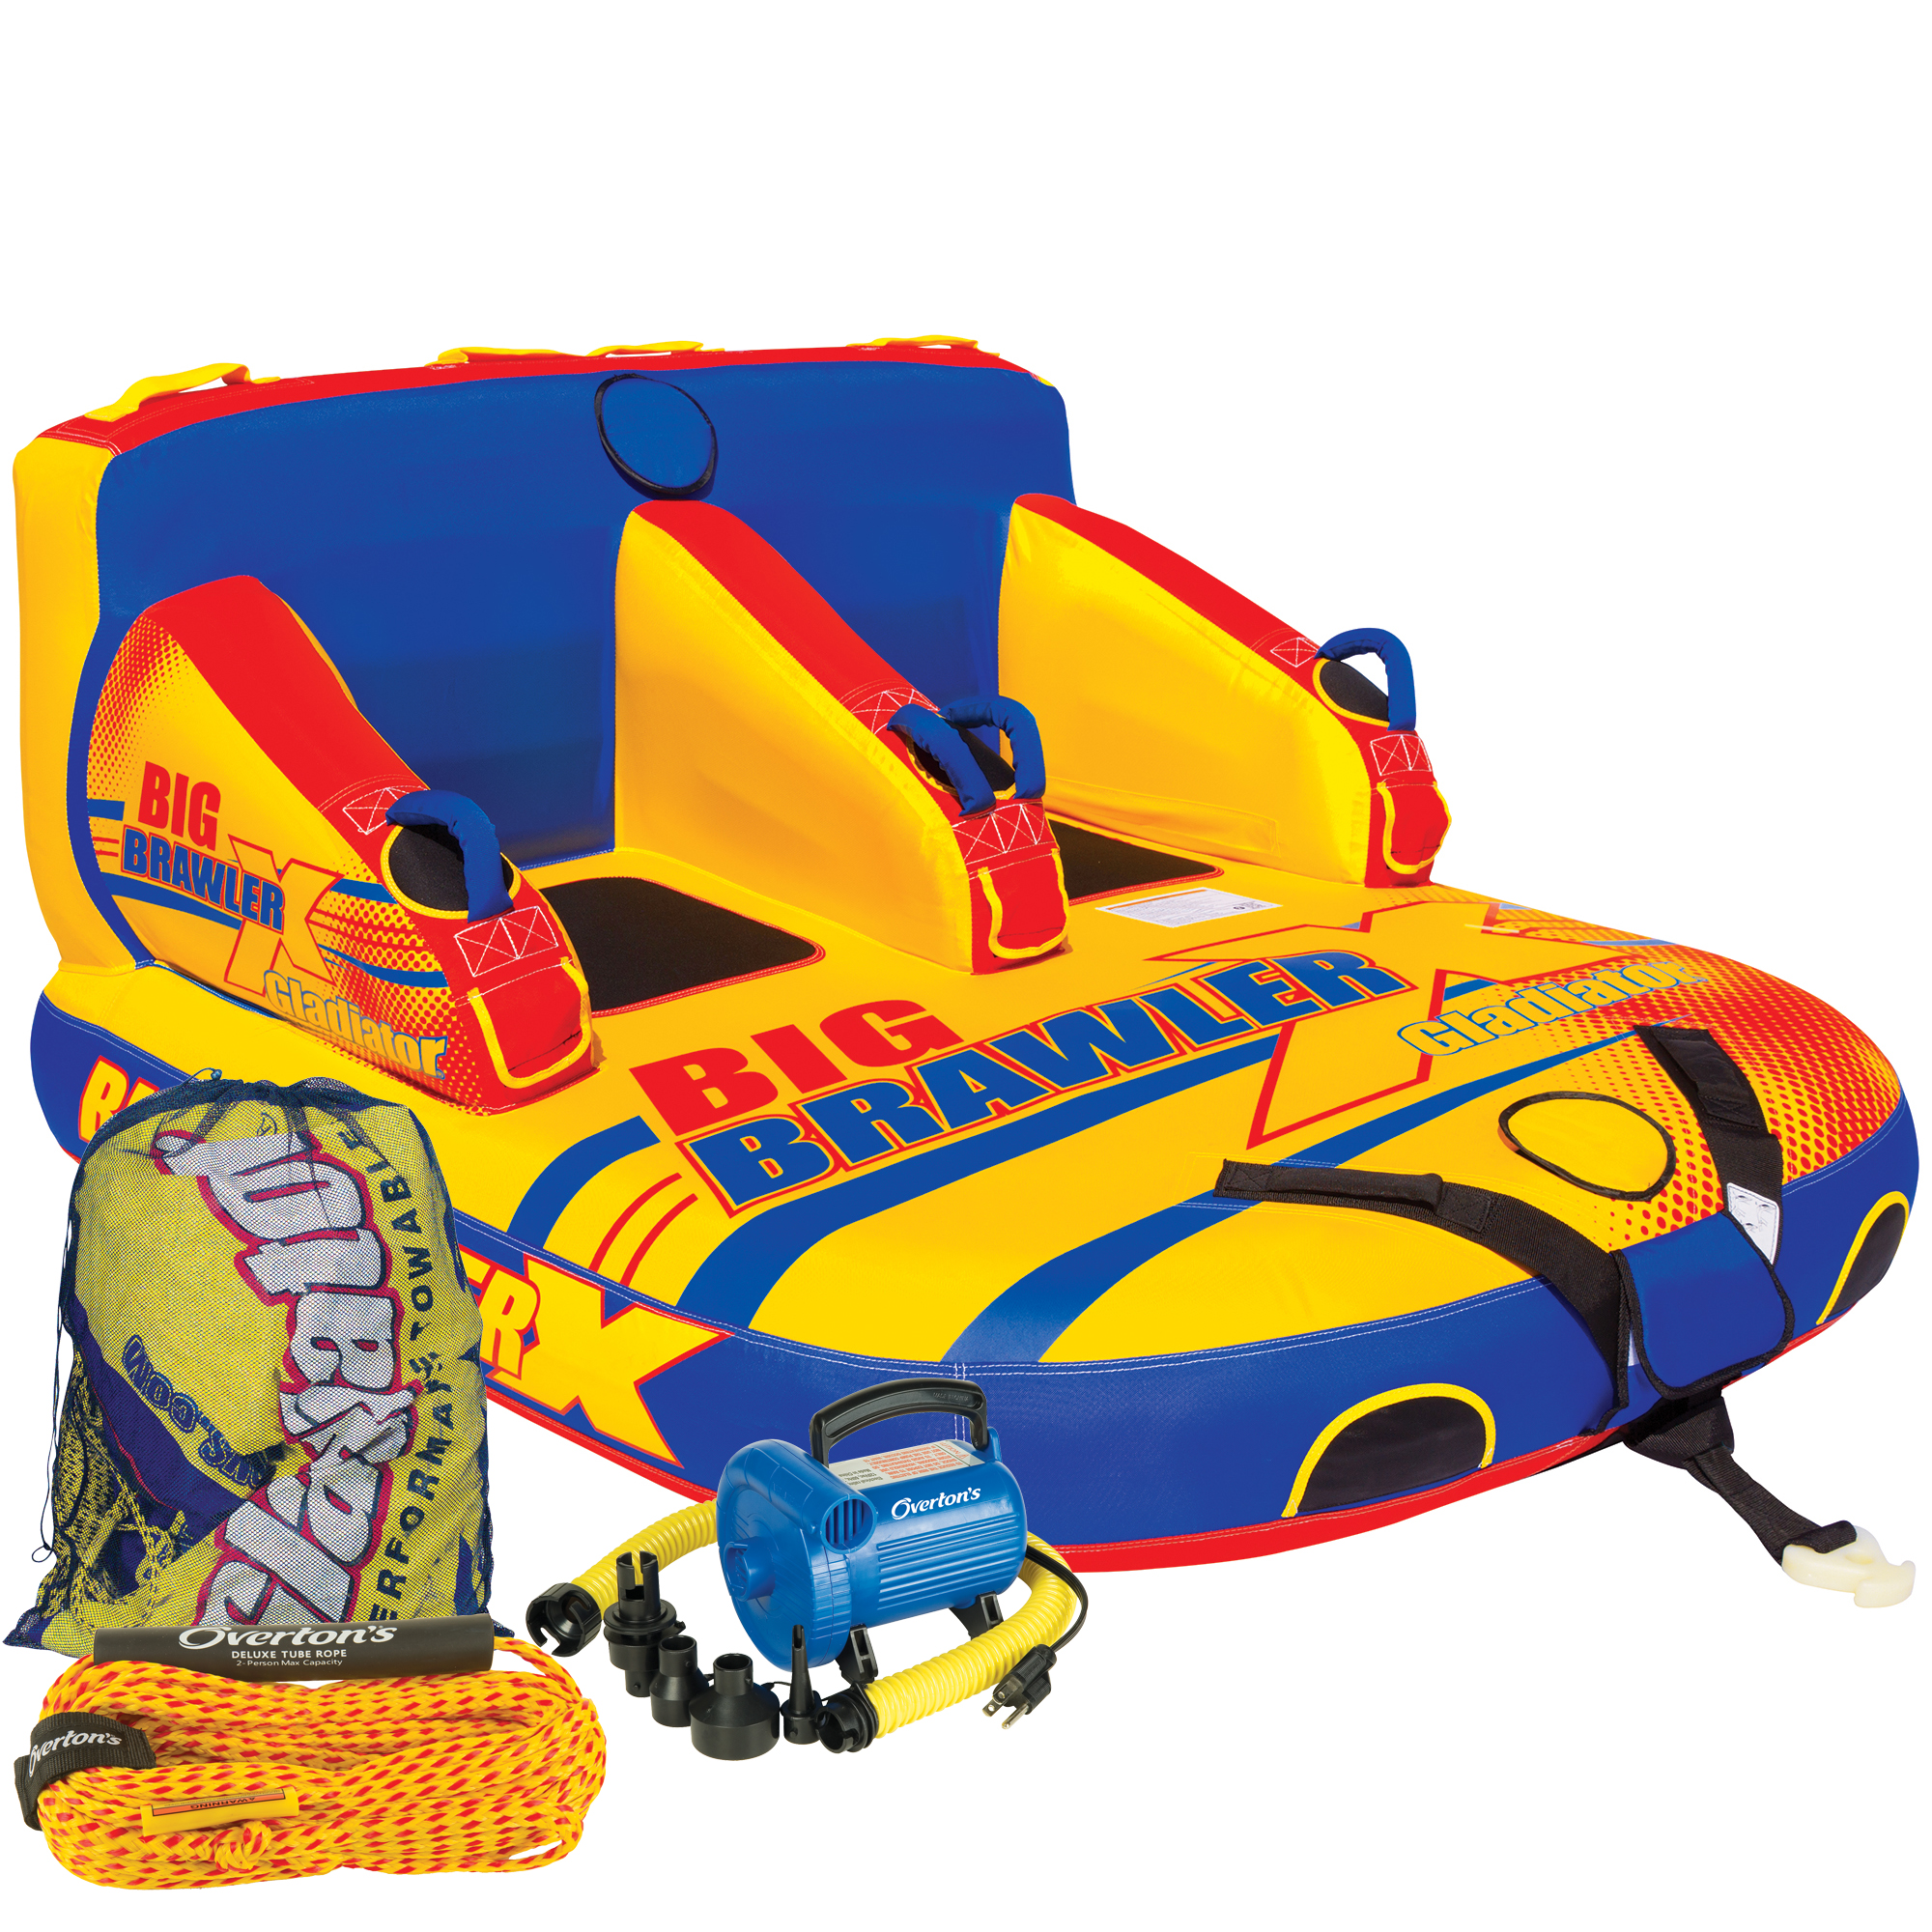 Gladiator Big Brawler X 2-Person Towable Tube Package